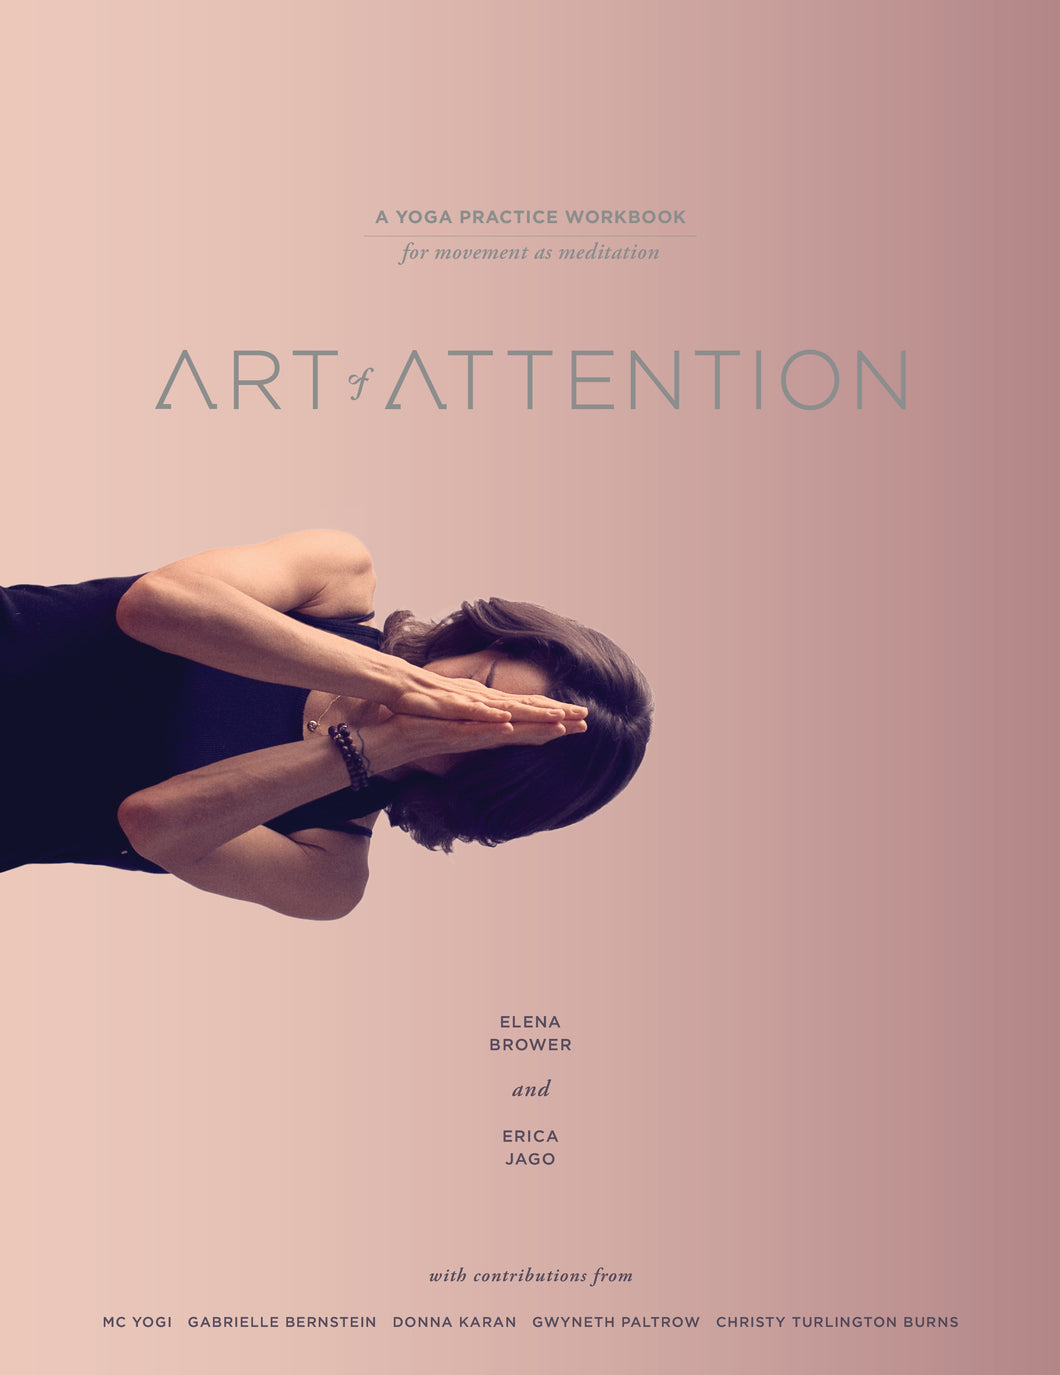 Art of Attention